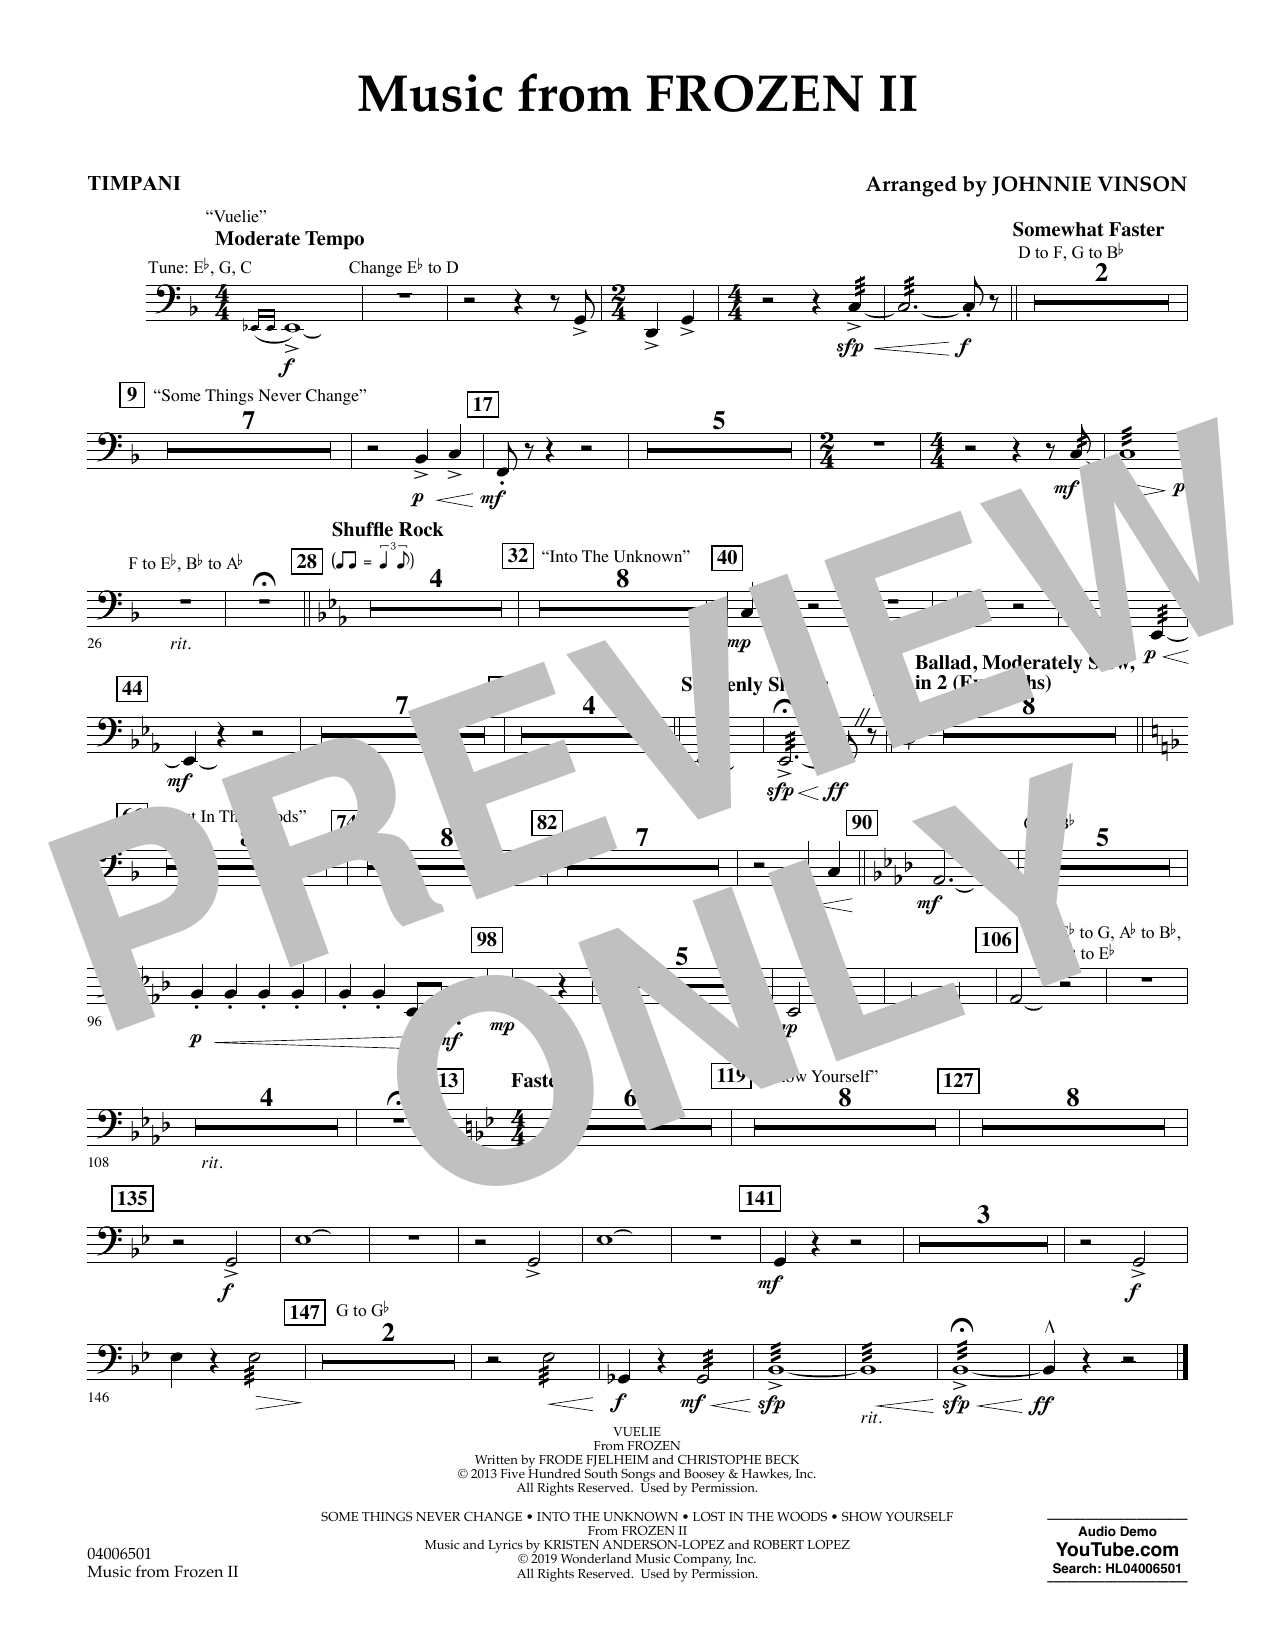 Kristen Anderson-Lopez & Robert Lopez Music from Disney's Frozen 2 (arr. Johnnie Vinson) - Timpani sheet music notes and chords. Download Printable PDF.